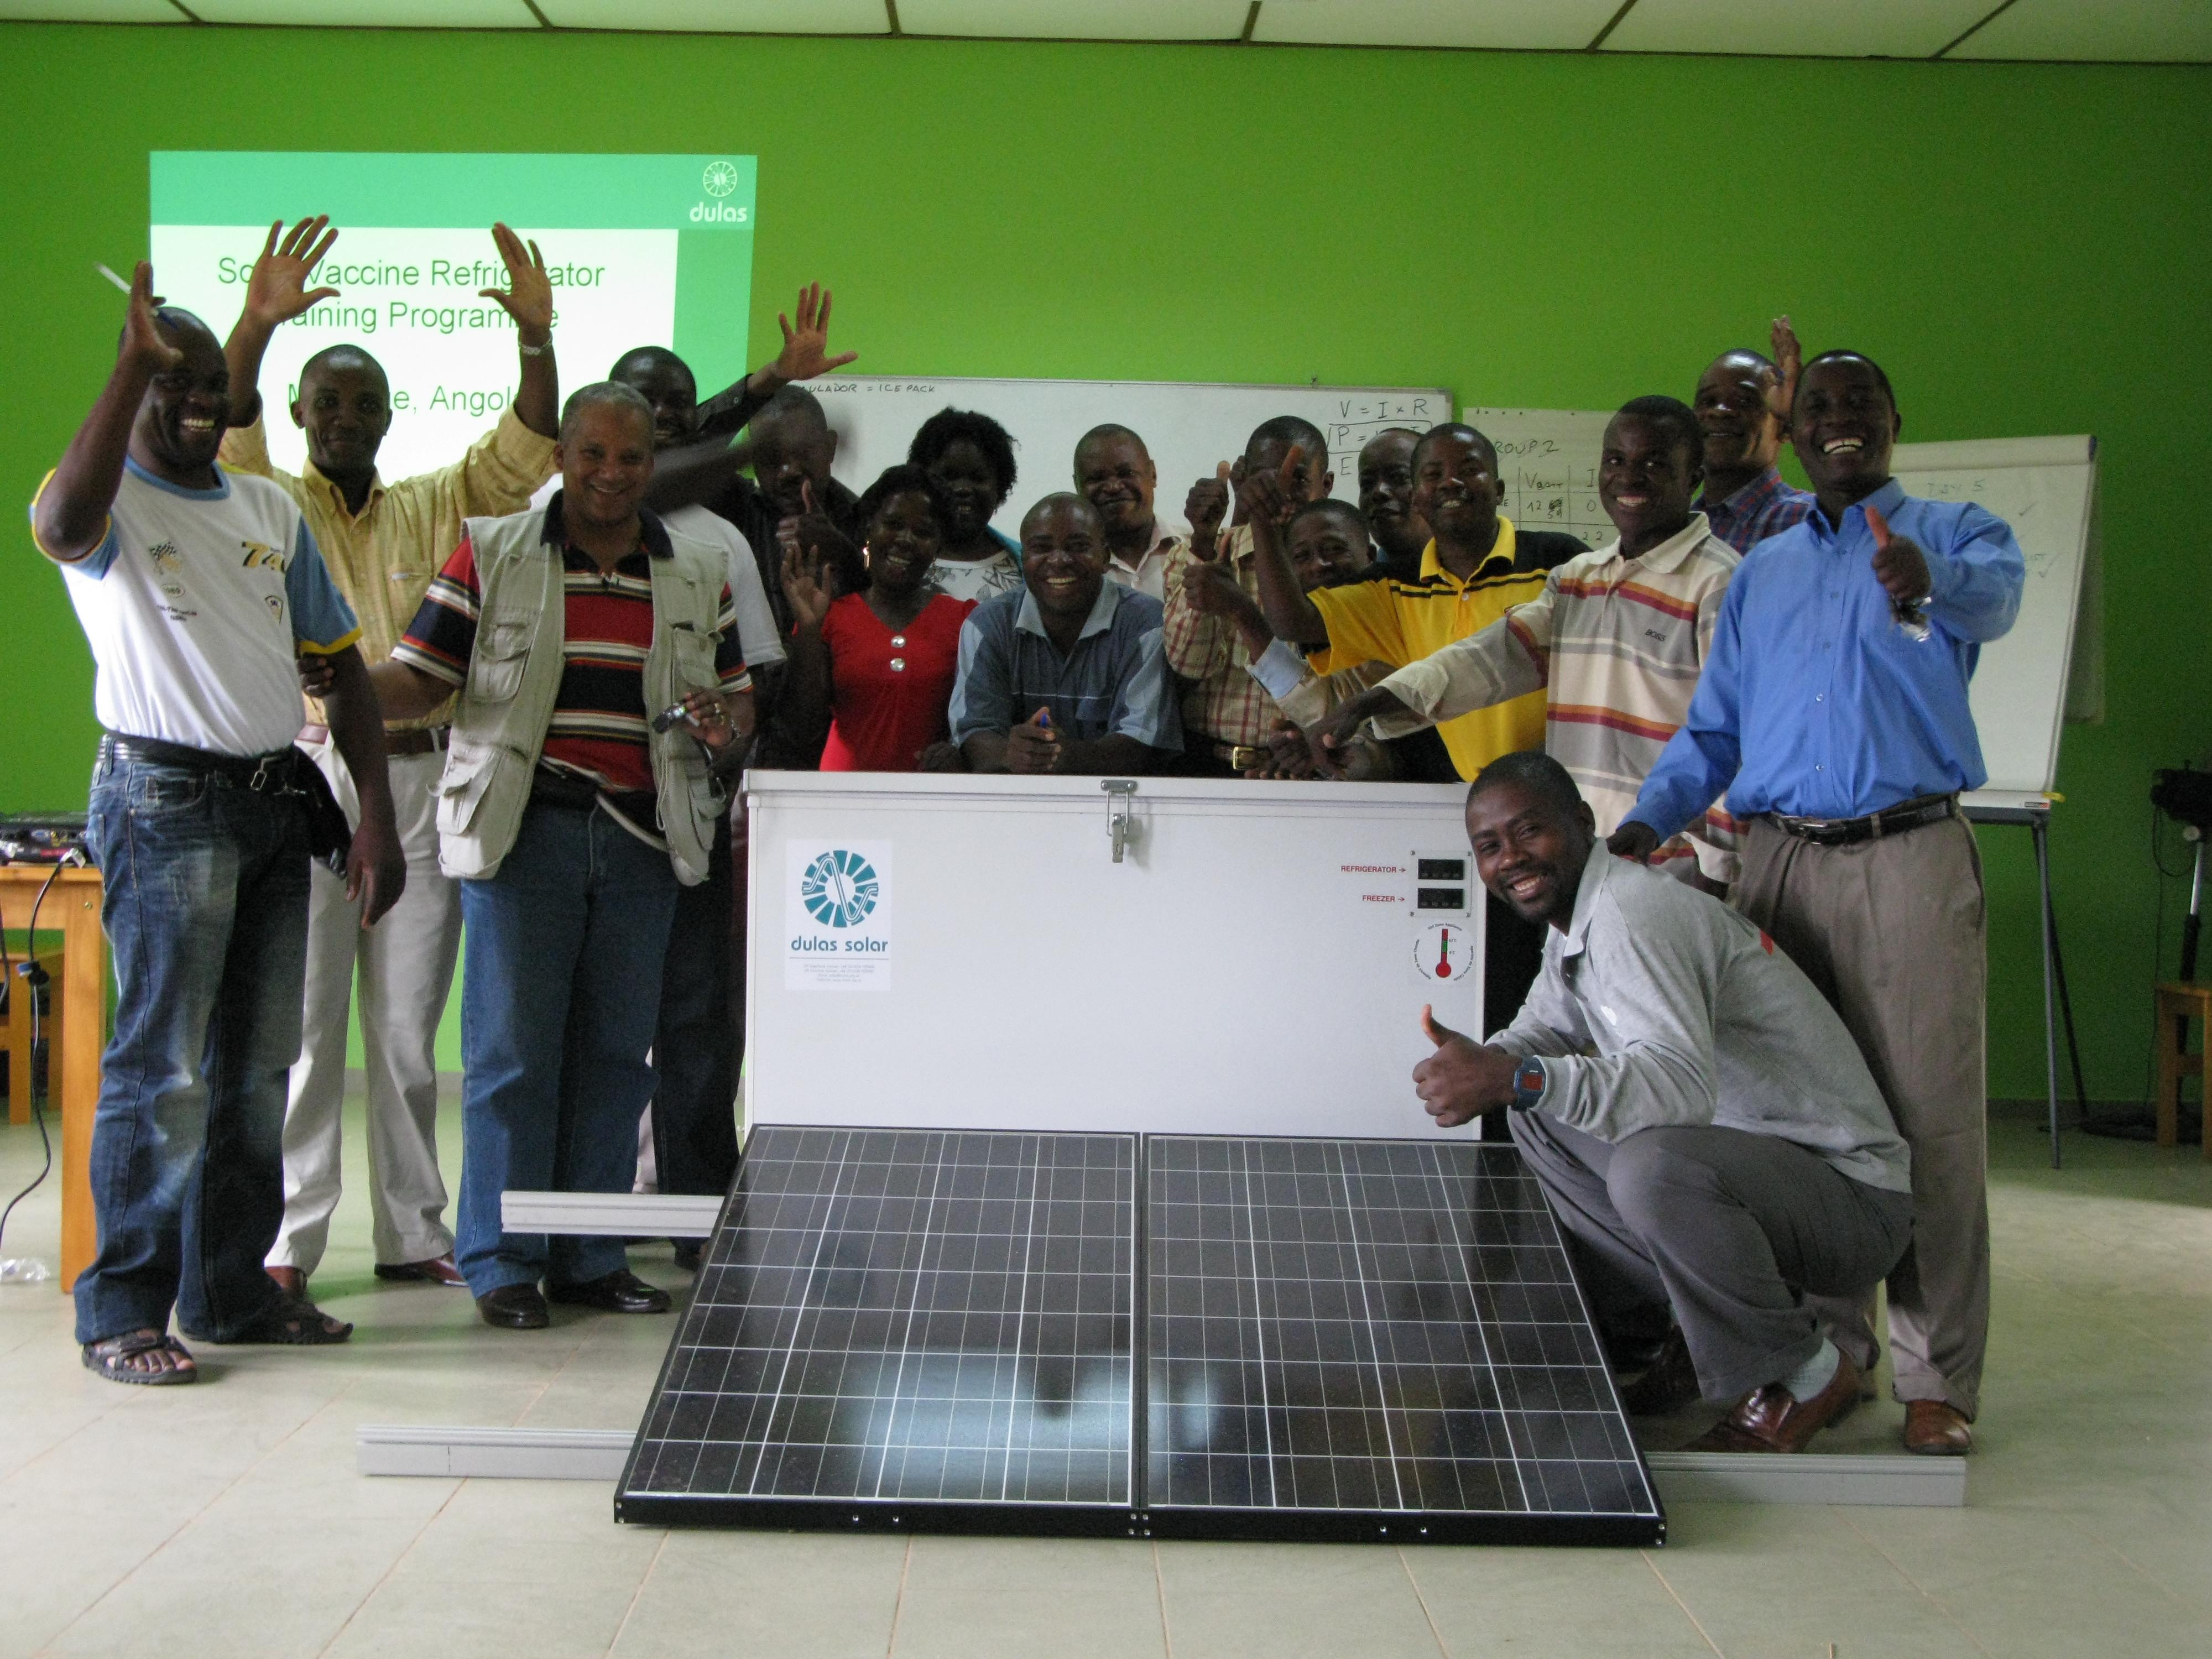 Group of people around a Solar Panel